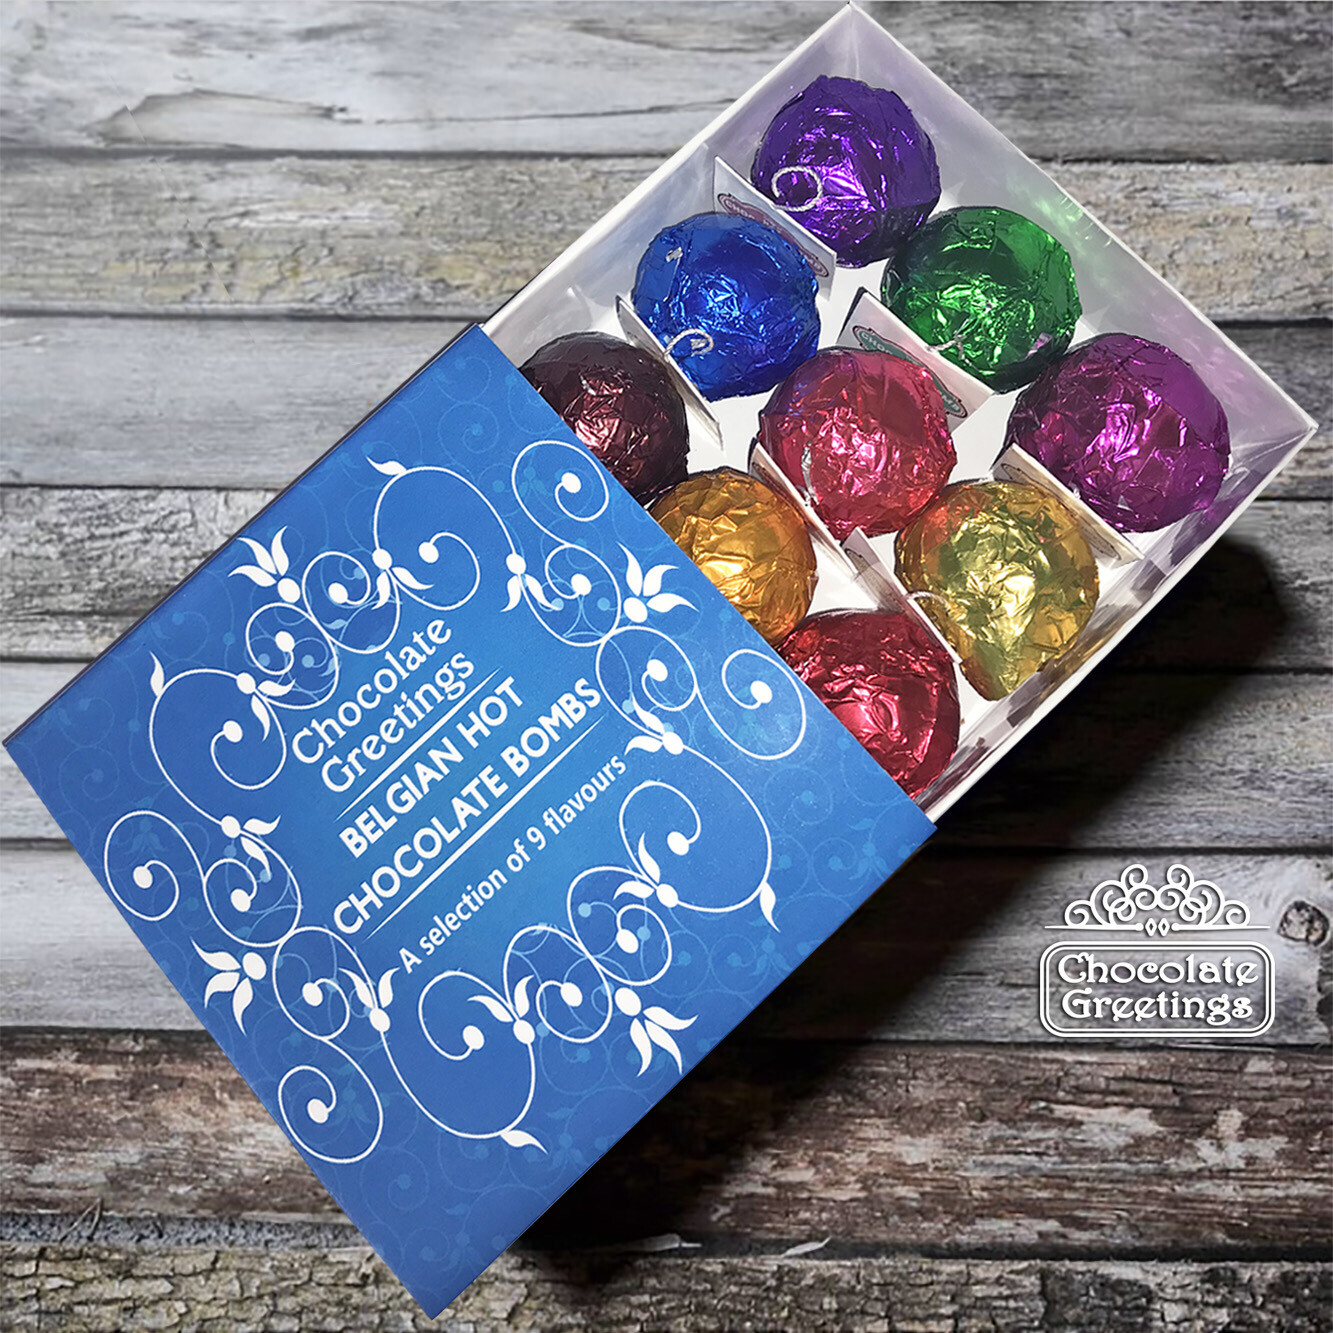 A selection of 9 different flavoured Belgian Hot Chocolate Bombs